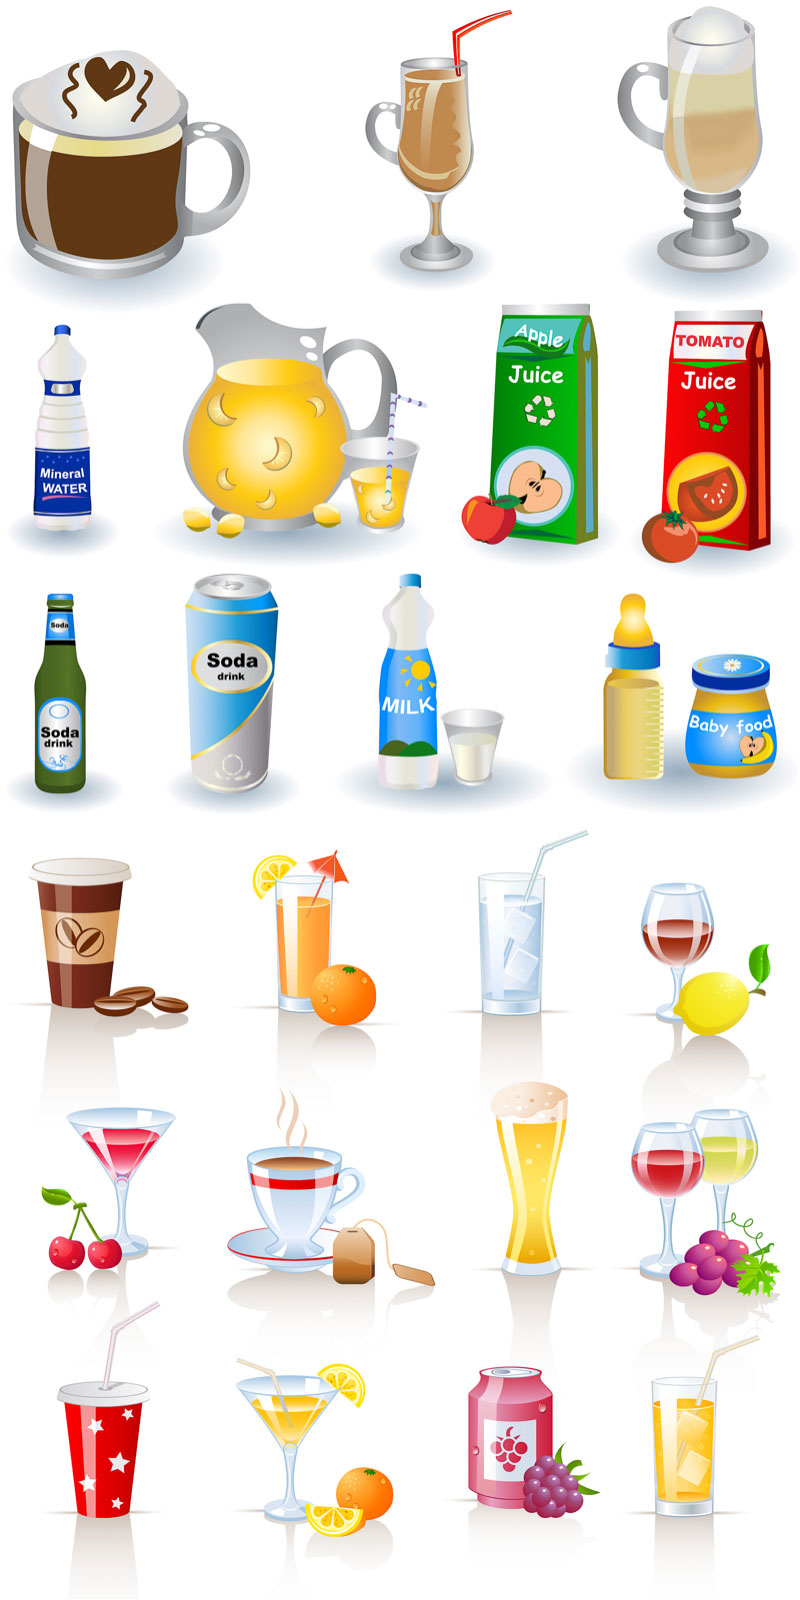 Free drinks cliparts download. Drink clipart drink menu